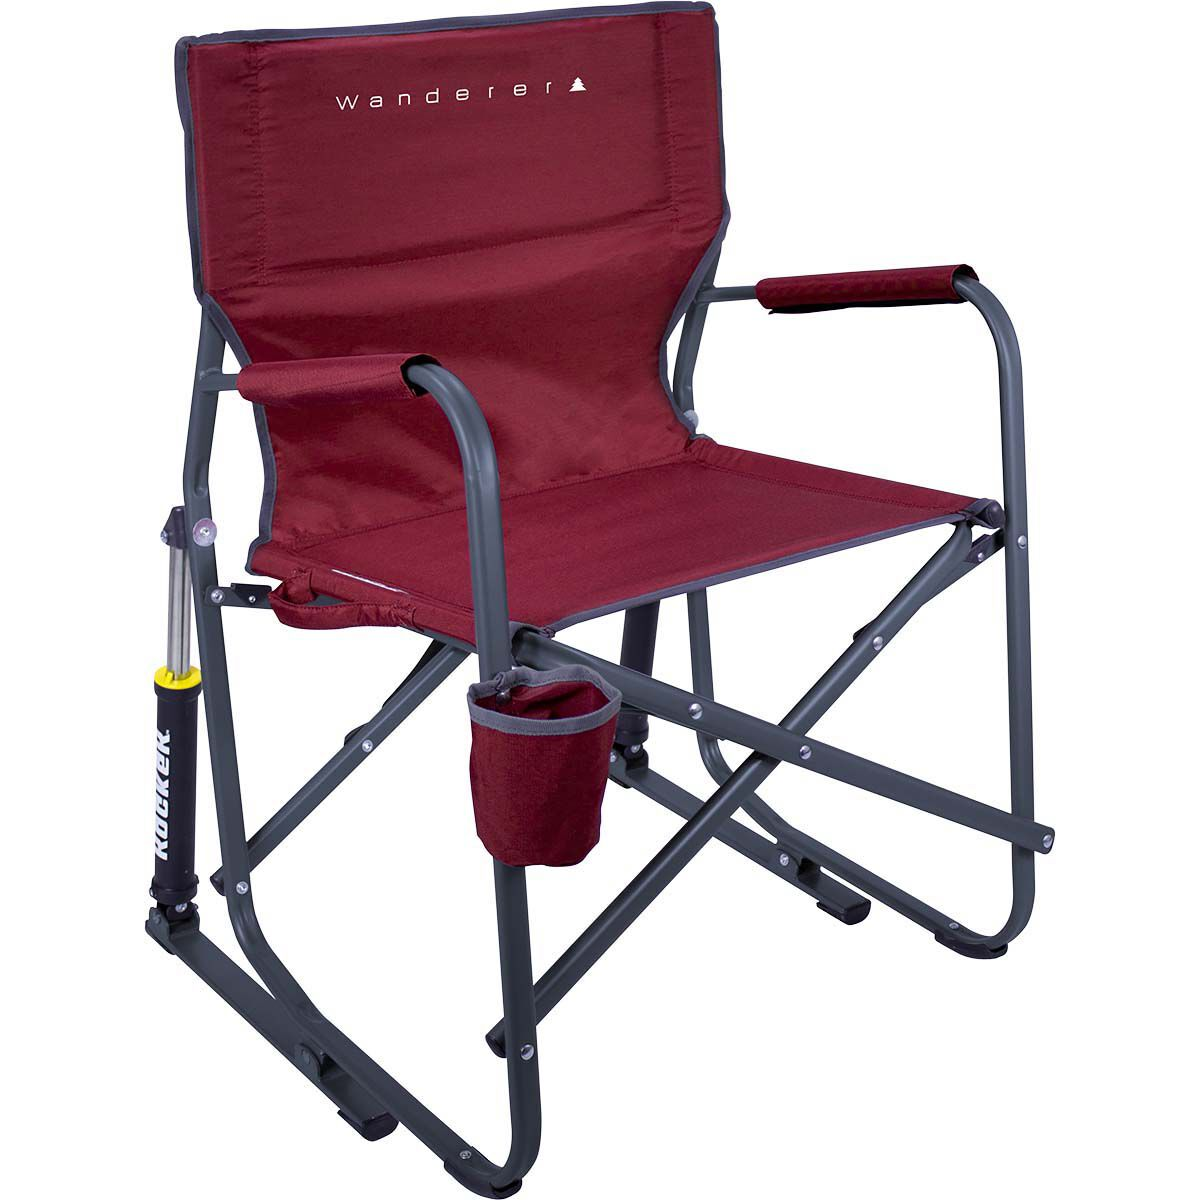 fishing chair best price office cushion memory foam beach chairs buy online bcf australia compare items clearance freestyle rocker camp hi res